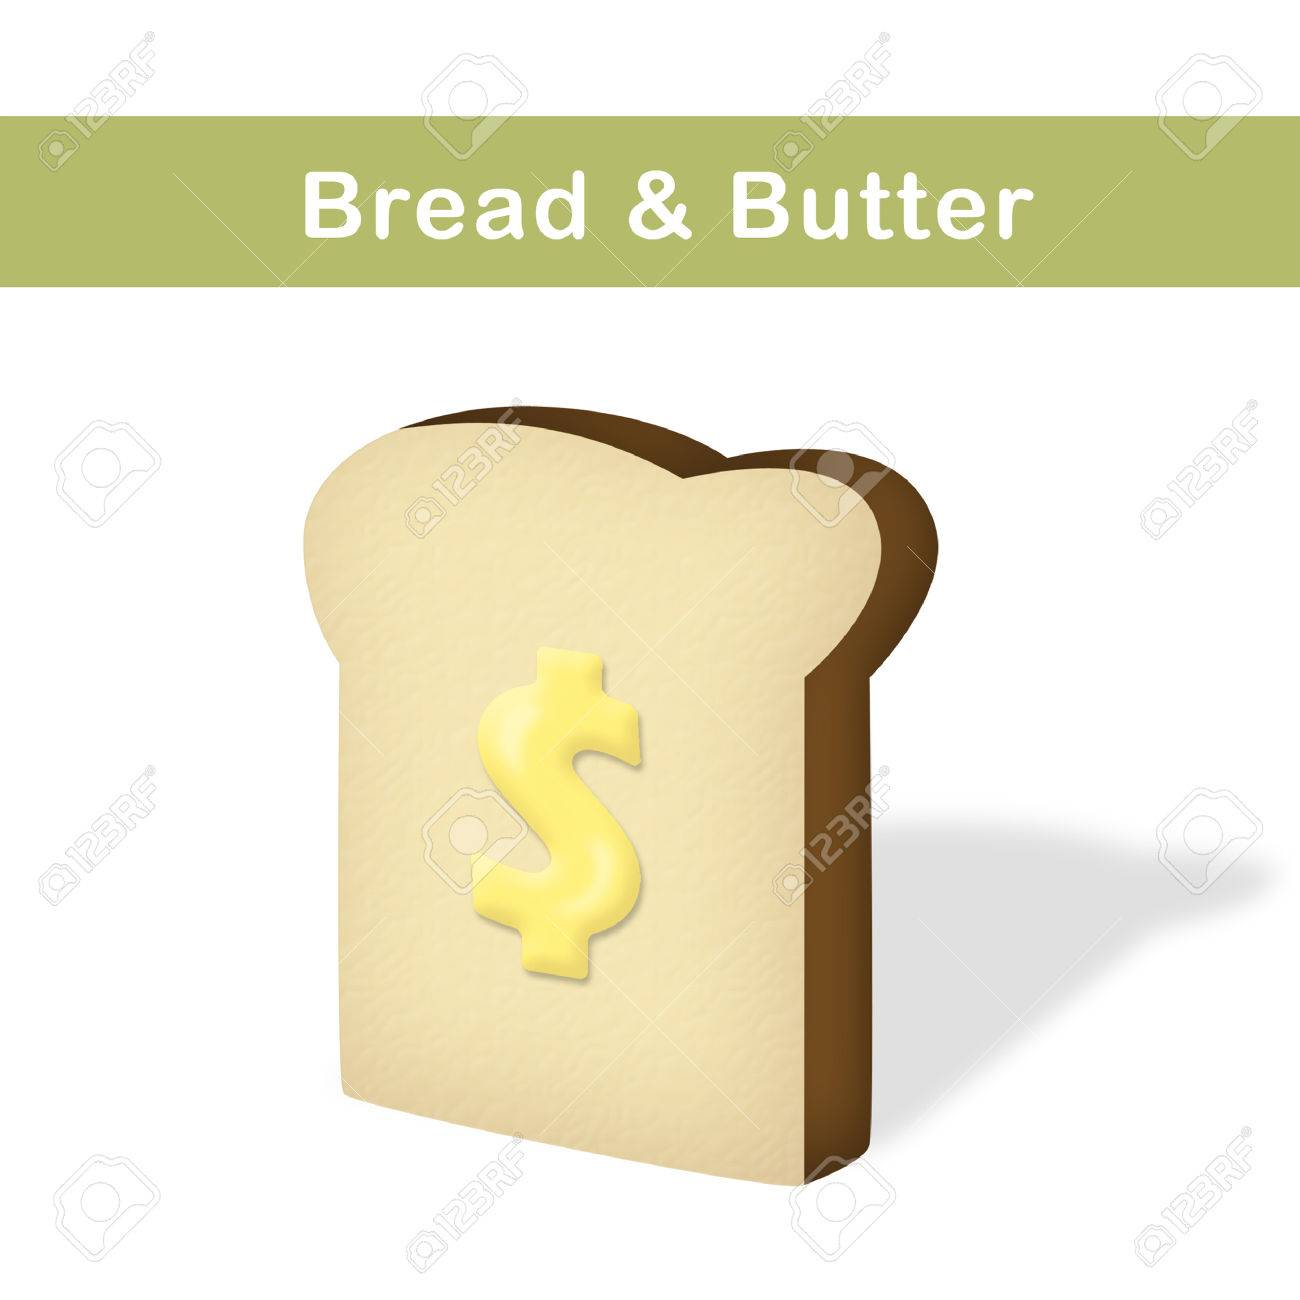 Slice of bread with butter shaped as dollar sign. - 43086849